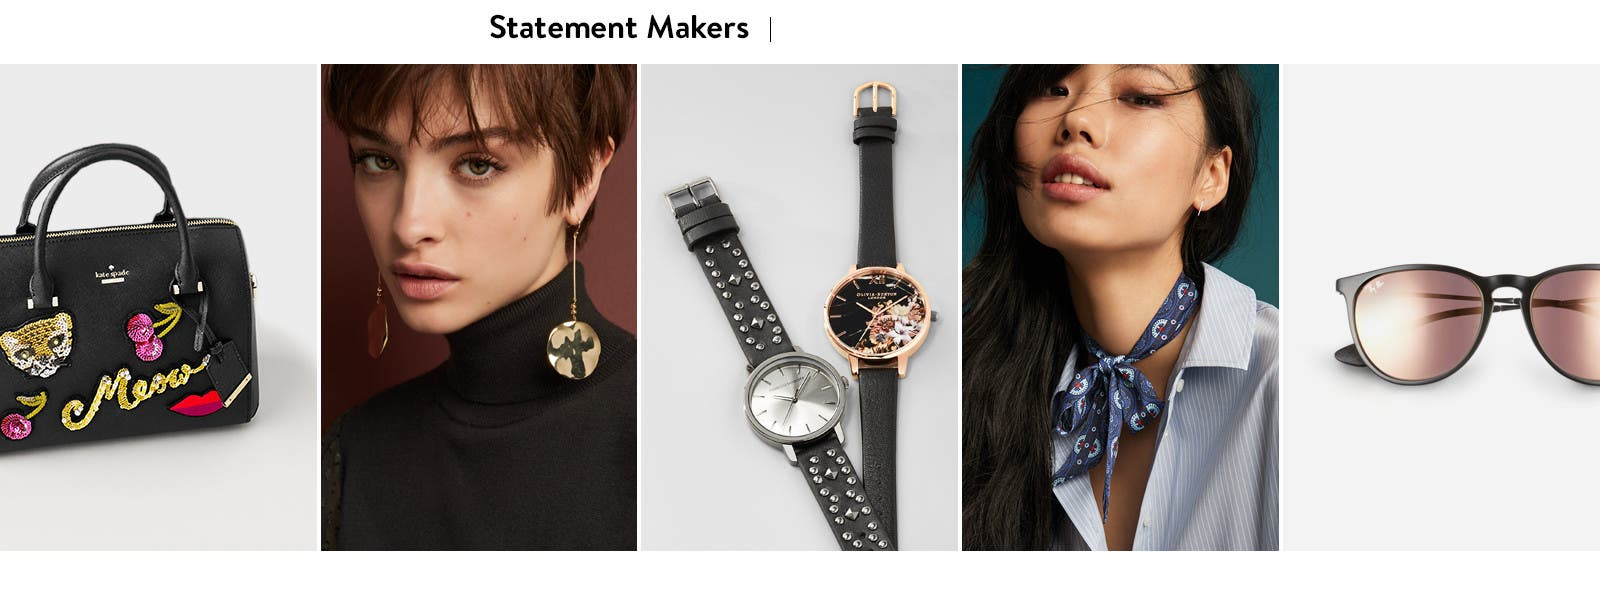 Statement makers: accessories.